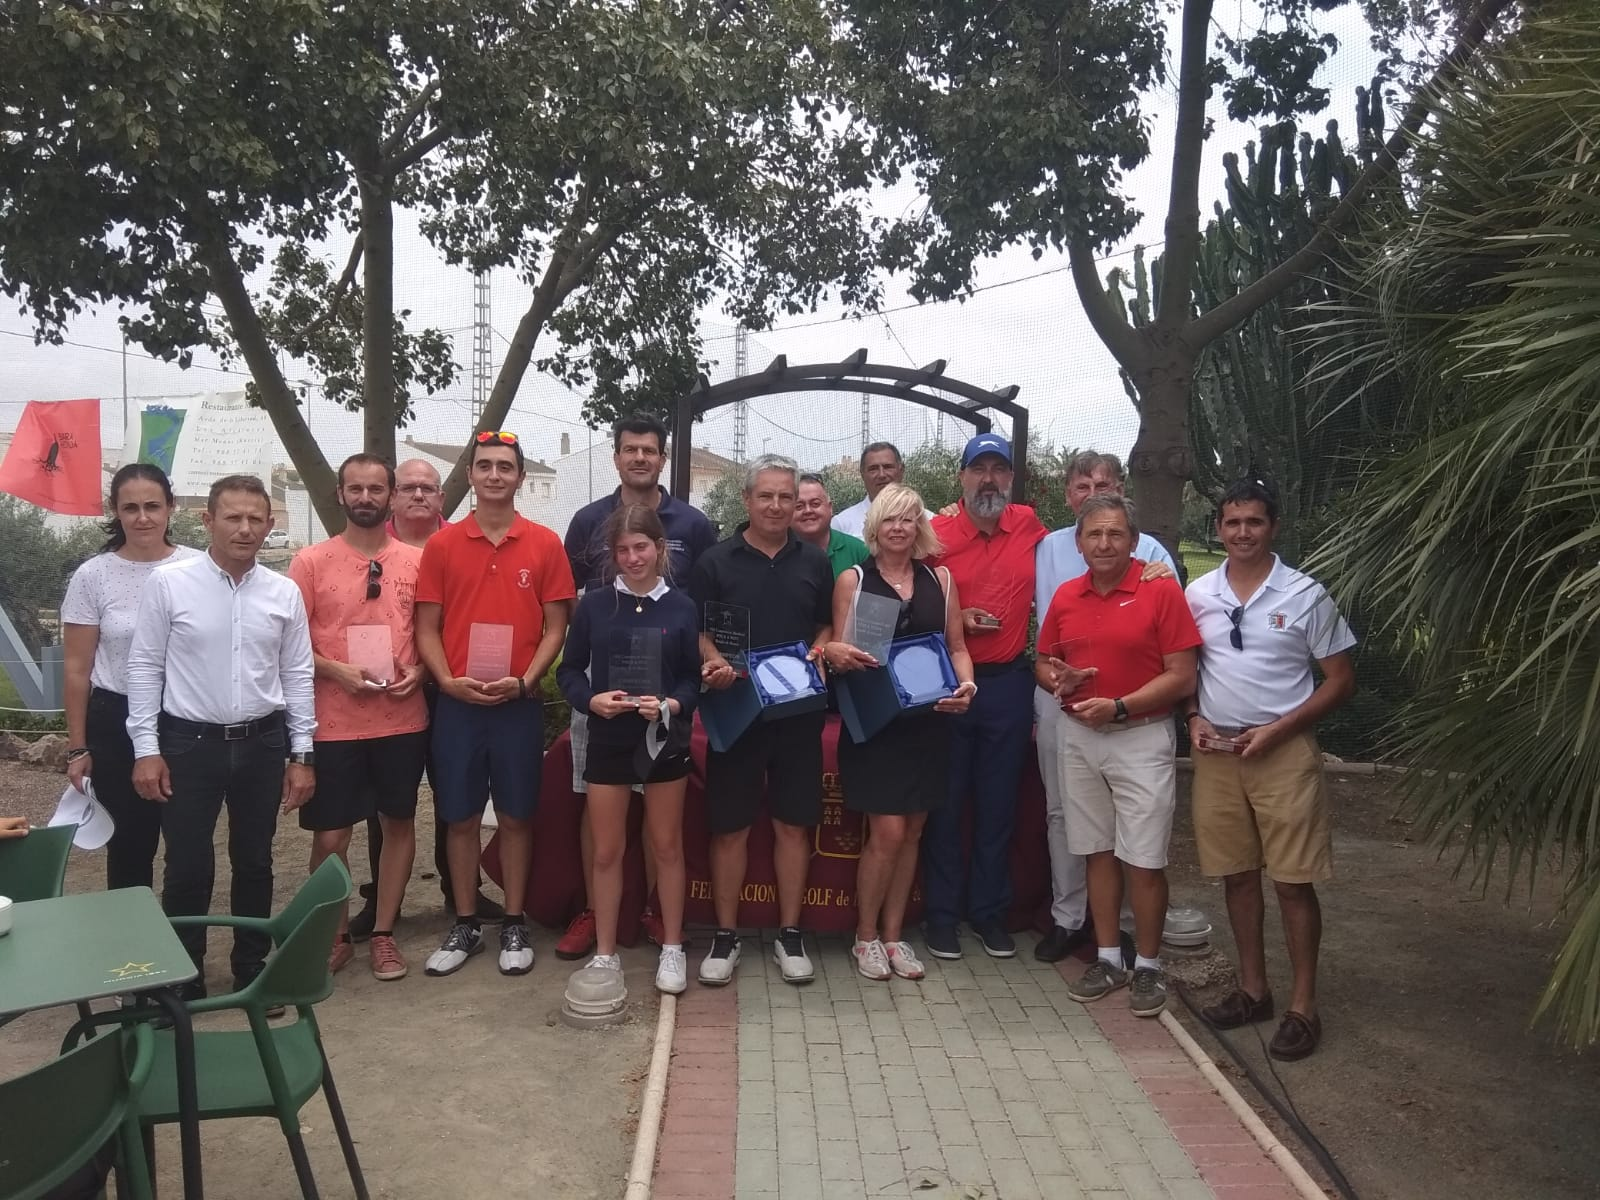 2019 VIII Campeonato Absoluto de Pitch and Putt Región de Murcia